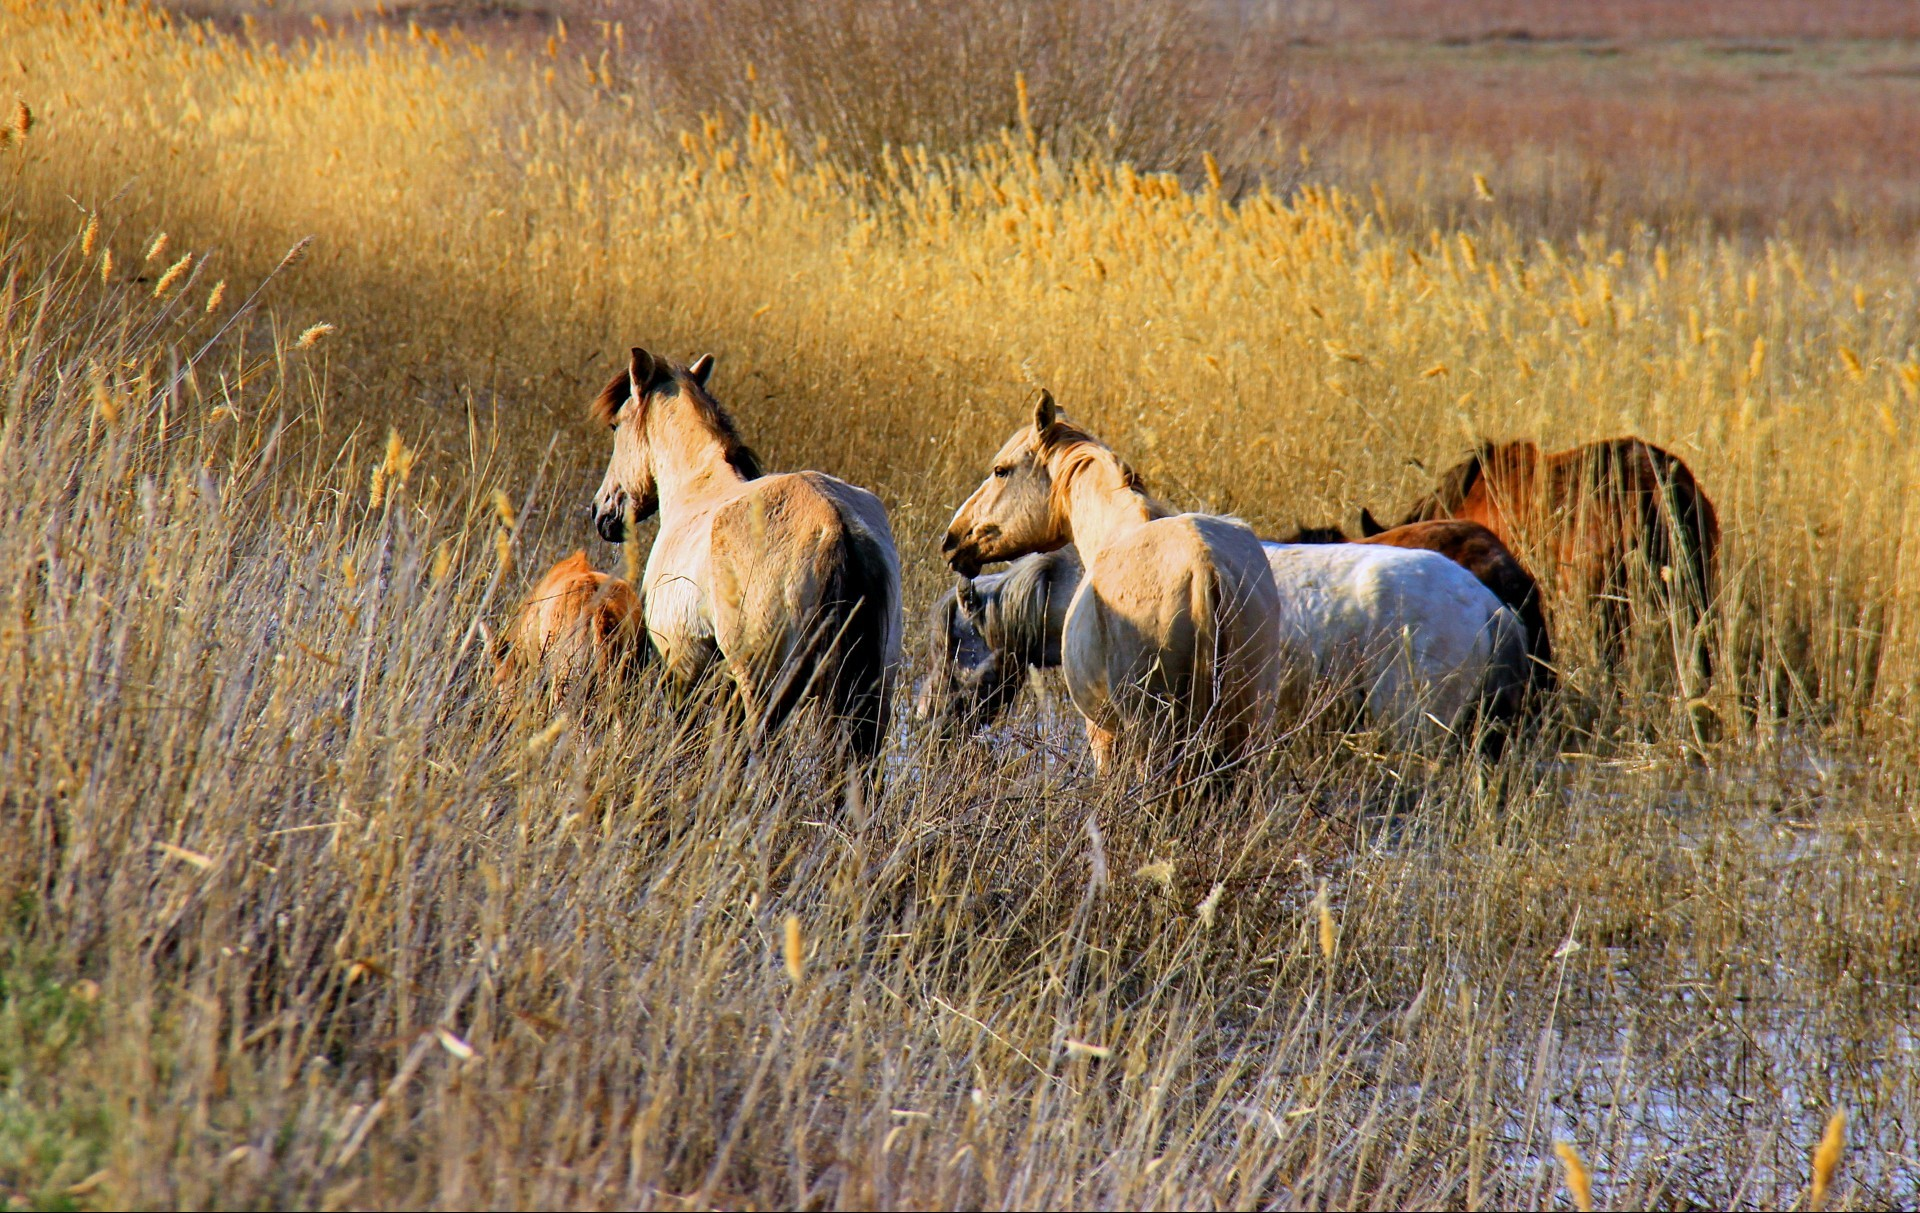 horses mammal cavalry grass pasture grassland outdoors farm field animal wildlife horse hayfield agriculture rural livestock mare mane nature daylight